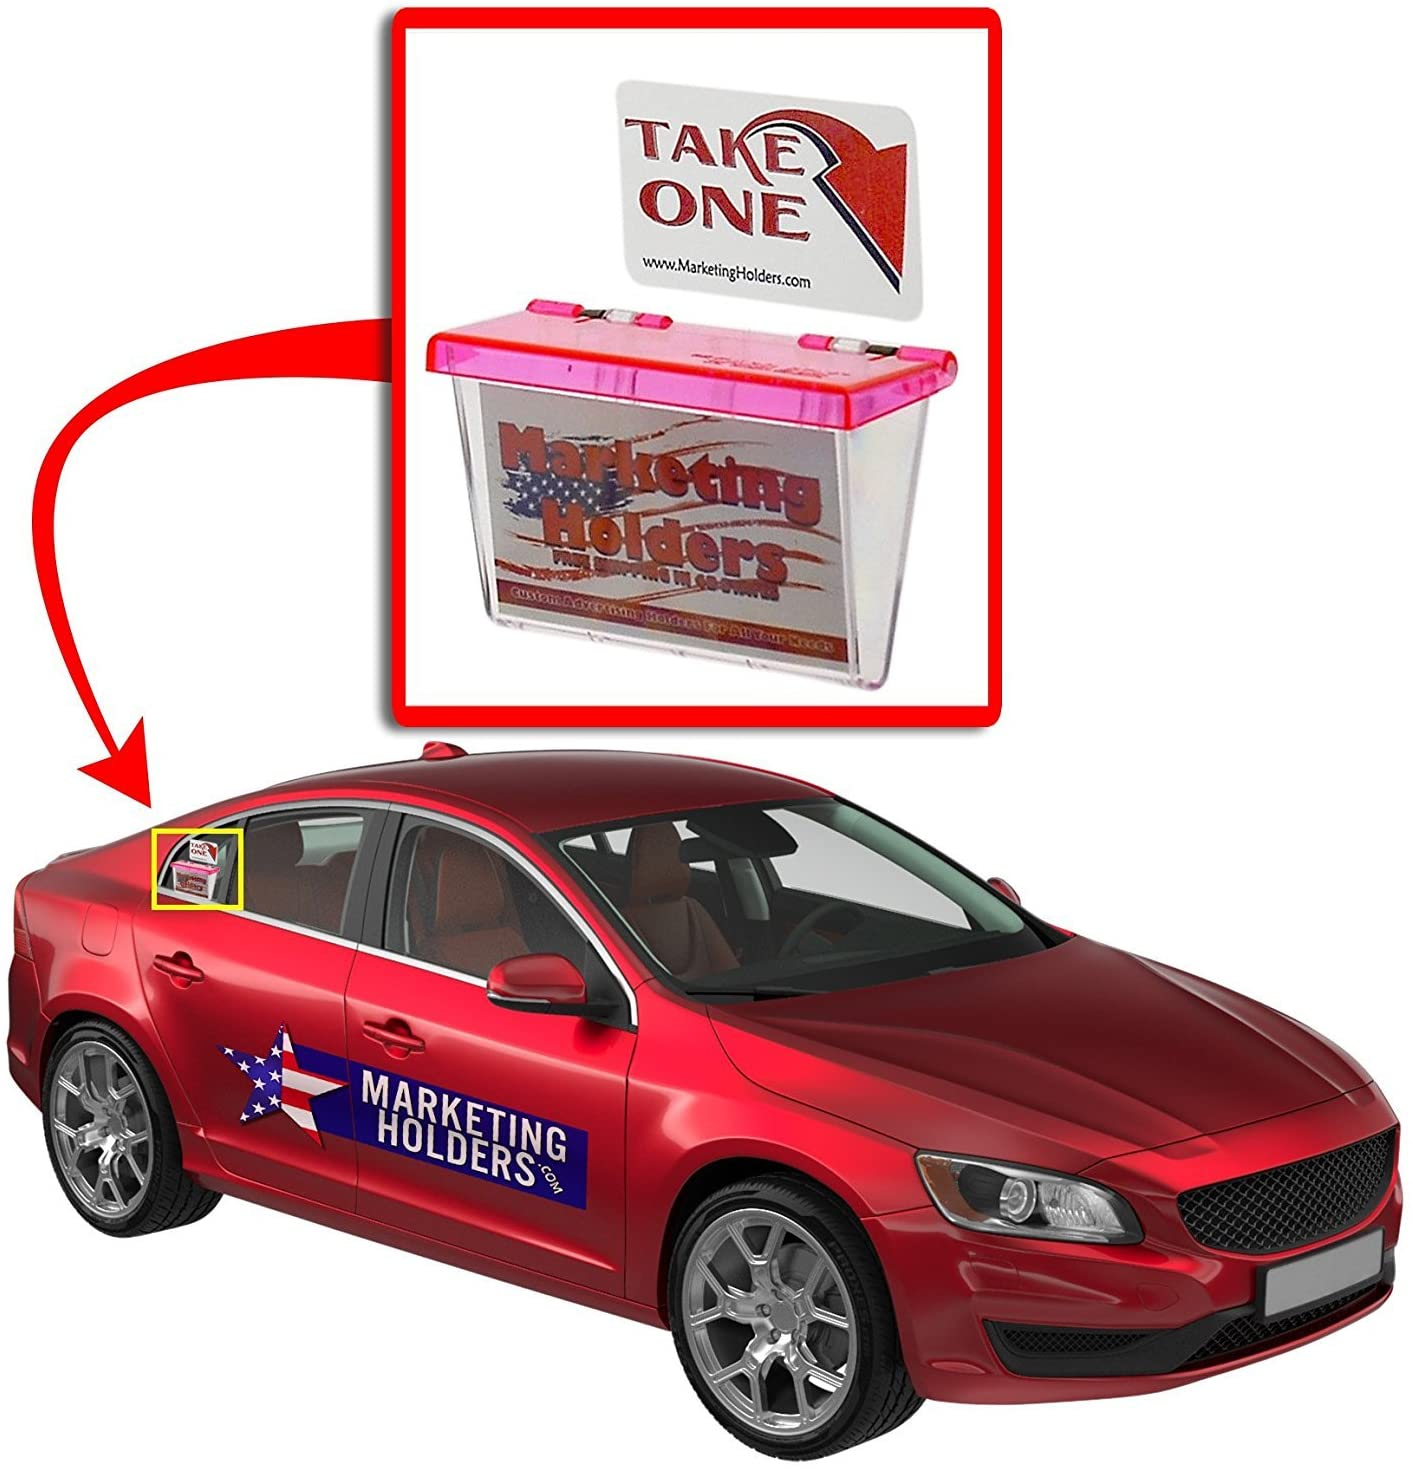 Marketing Holders Pink Outdoor Vehicle Business Card Holder FREE (TAKE A CARD) Sticker included as Pictured (Pink Lid, 2)